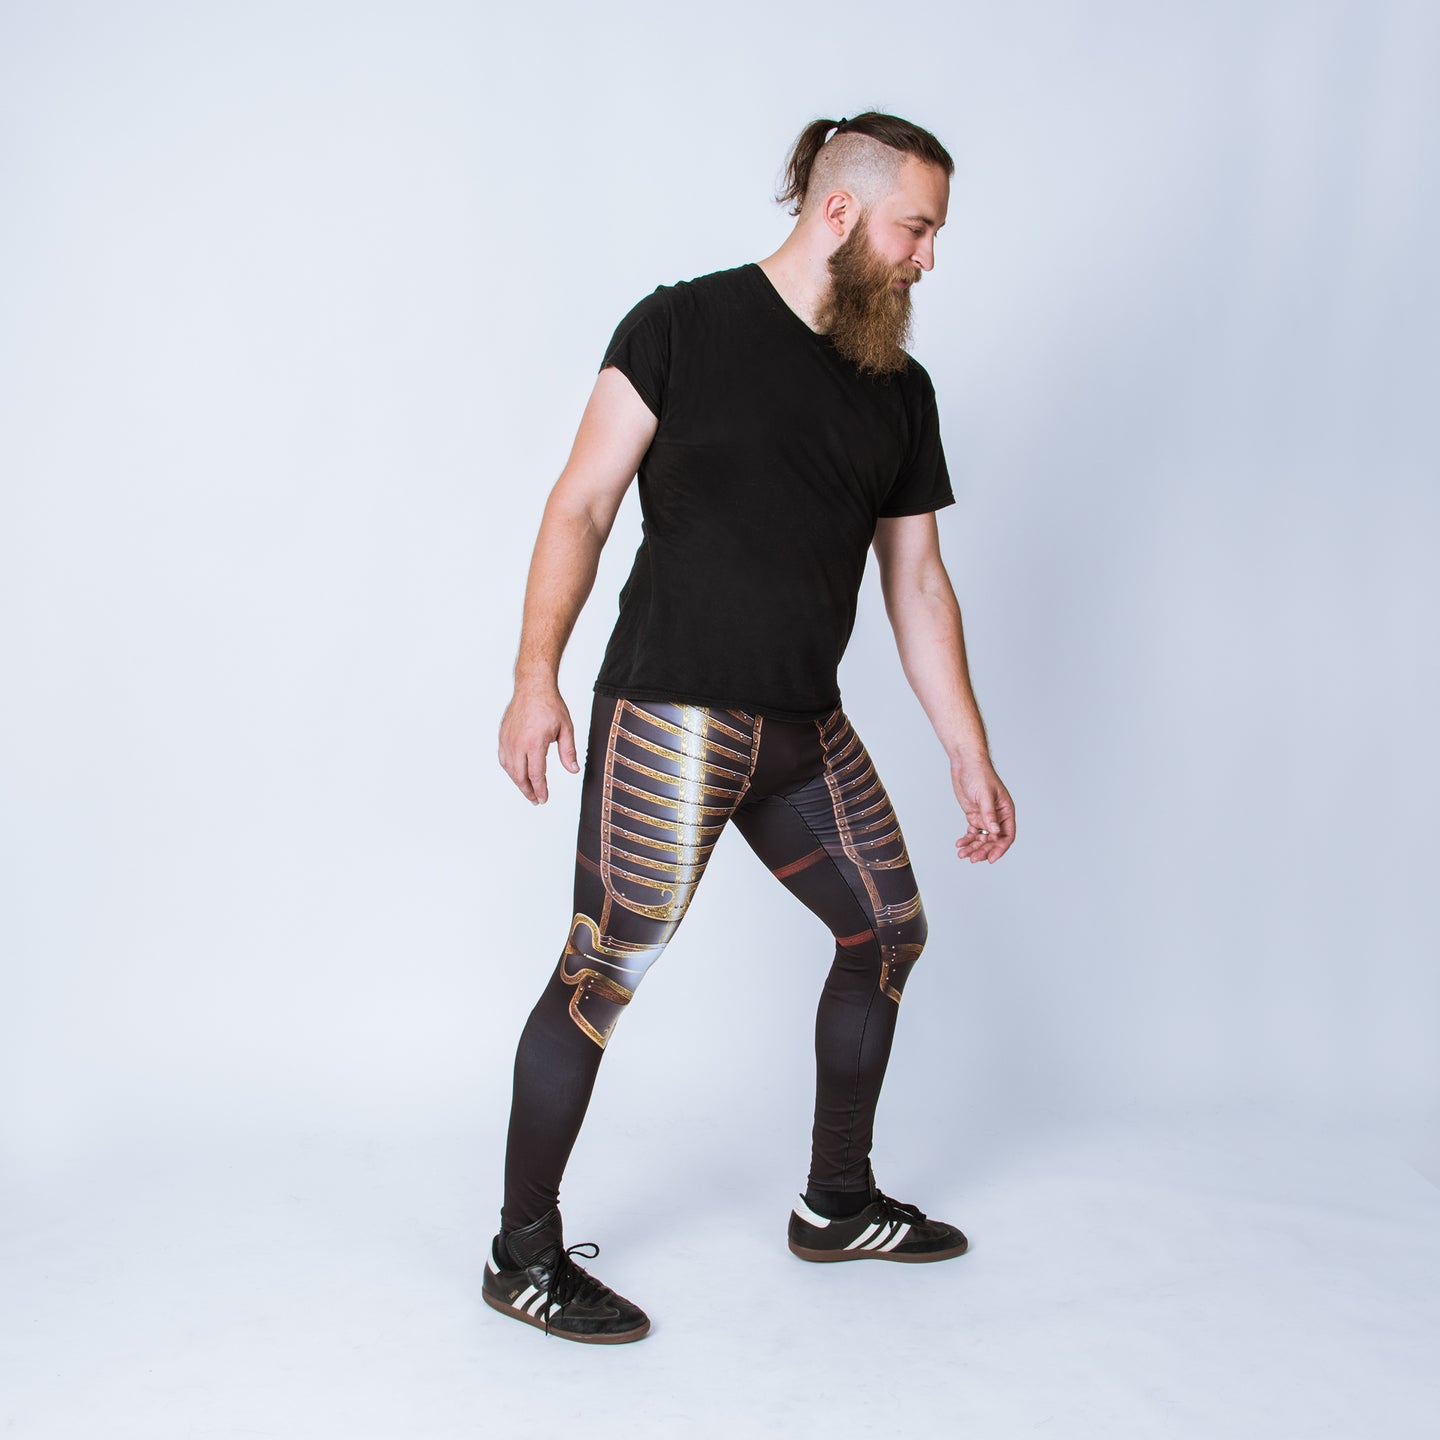 Printed men's leggings based on the field armor of Henry VIII